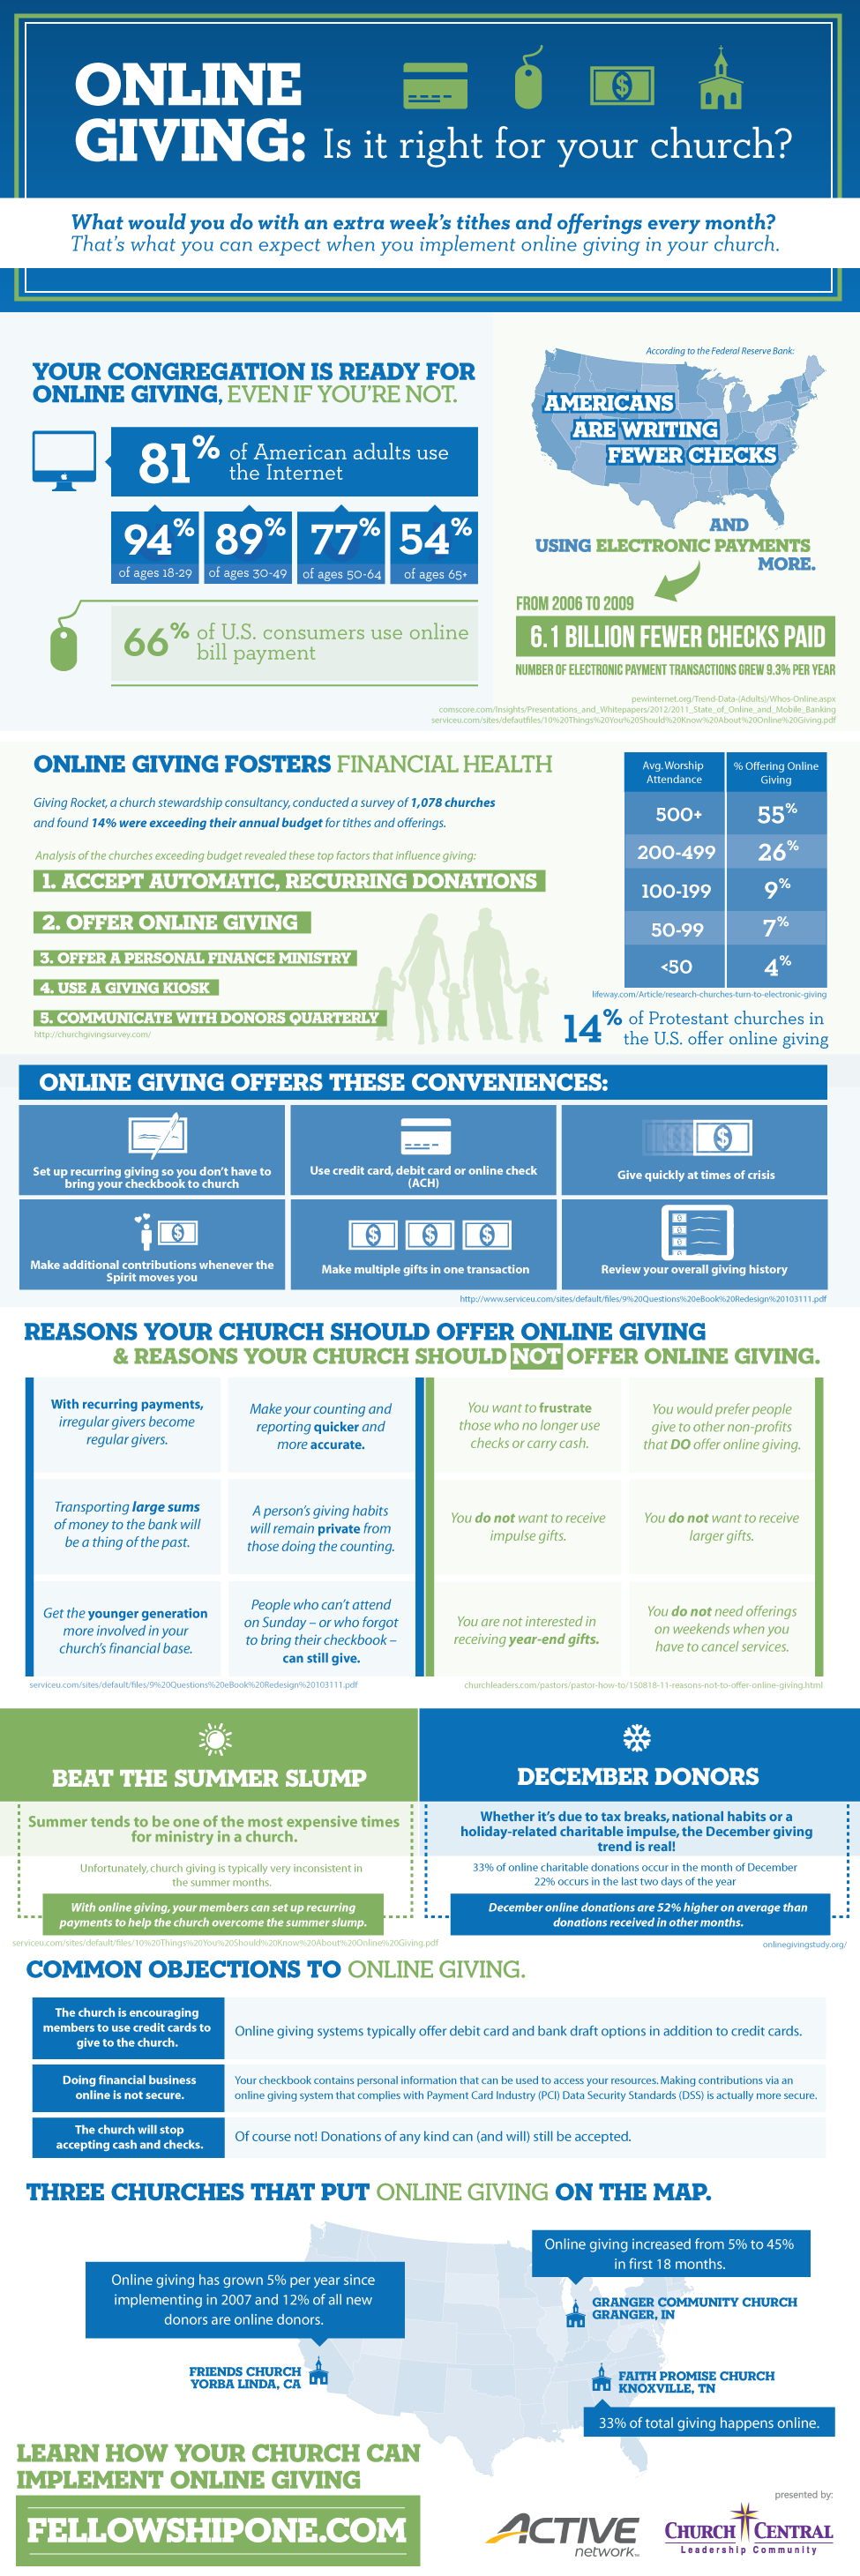 Online Giving: Is it right for your church? [Infographic]